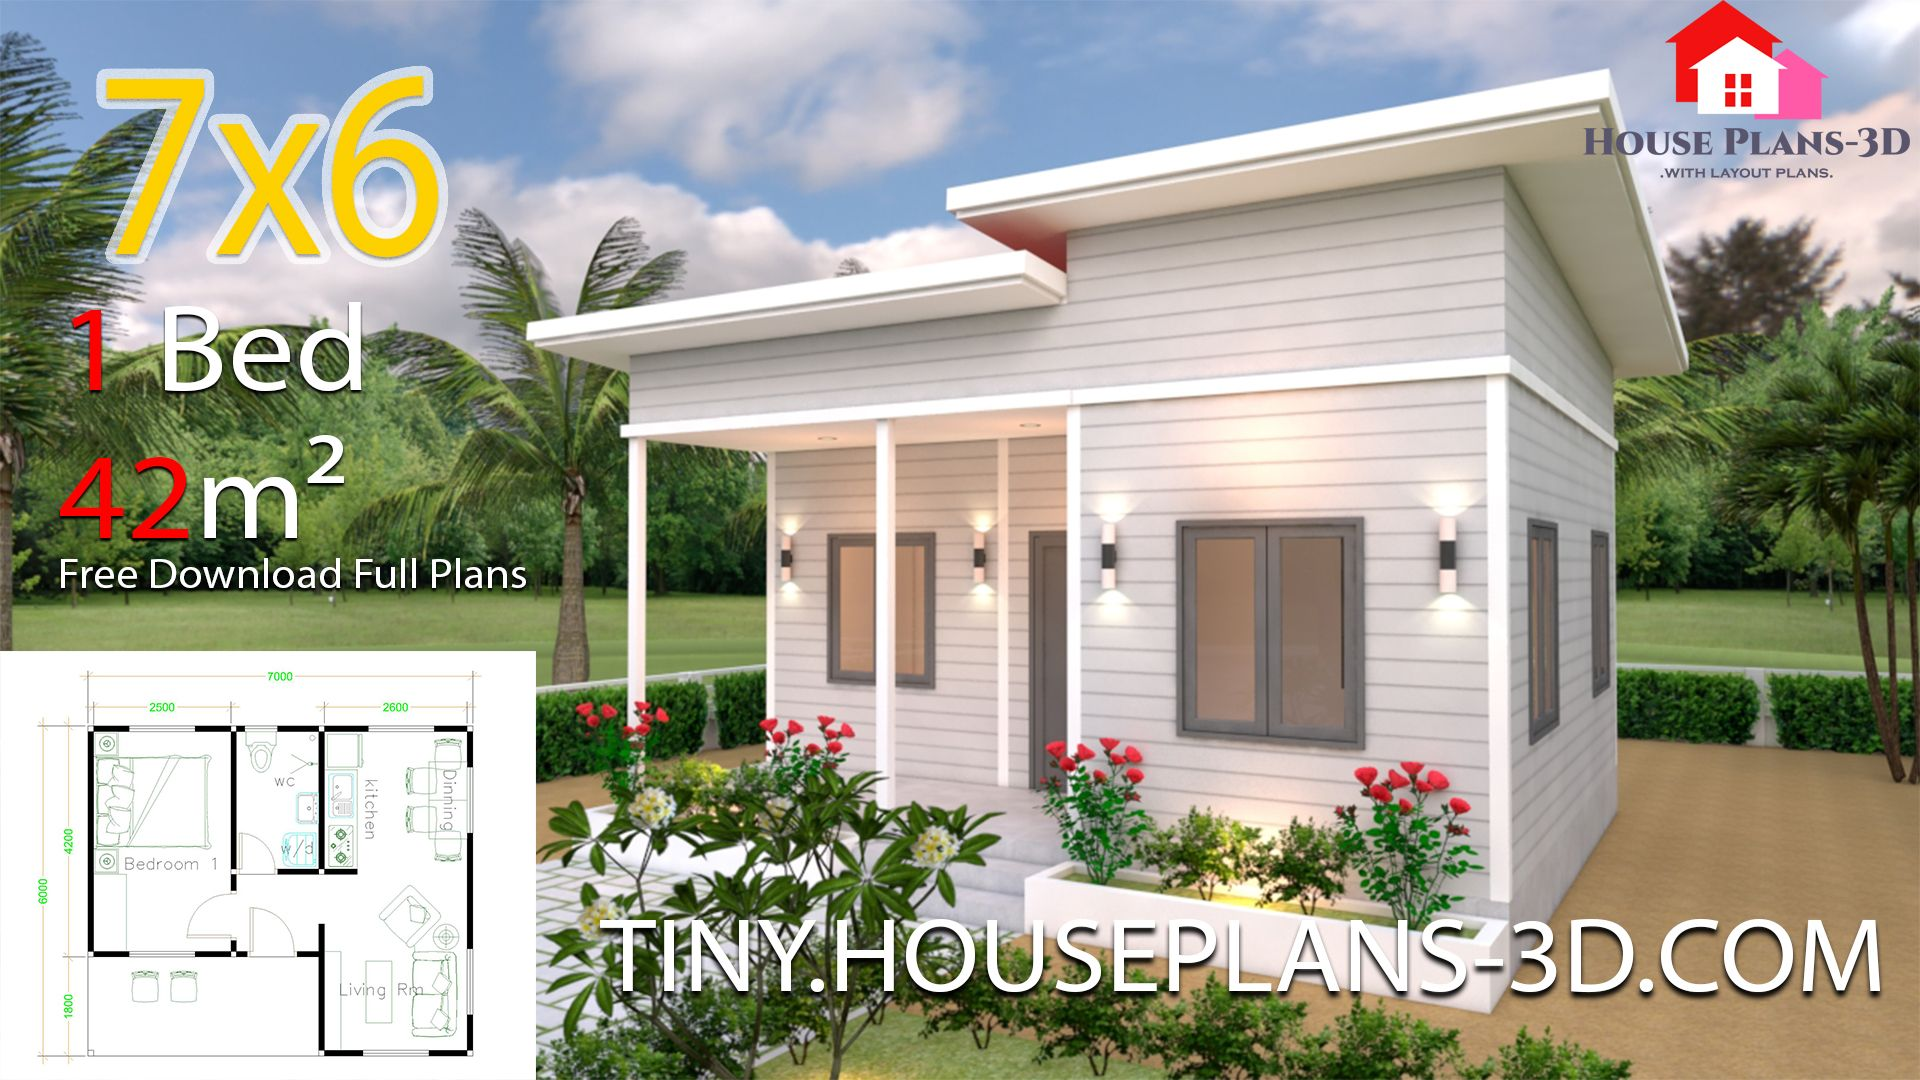 Tiny House Plans 7x6 With One Bedroom Shed Roofthe House Has Car Parking And Garden Living Small House Design Plans One Bedroom House Plans One Bedroom House